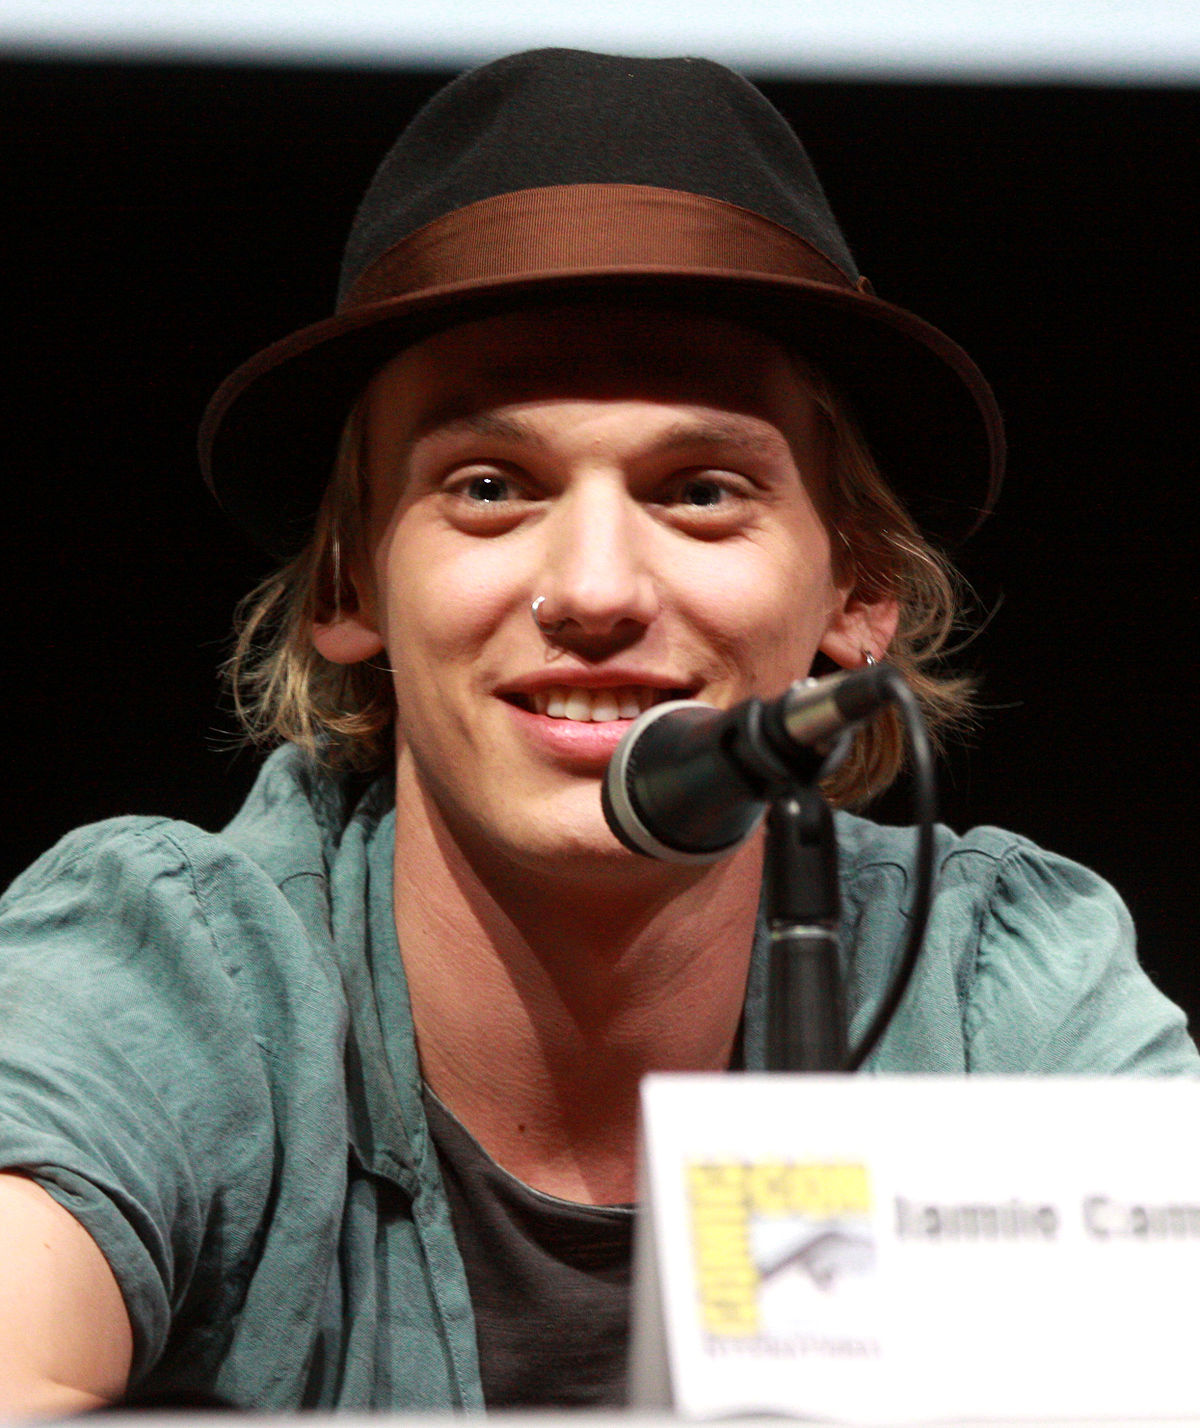 Jamie Campbell Bower (born 1988)